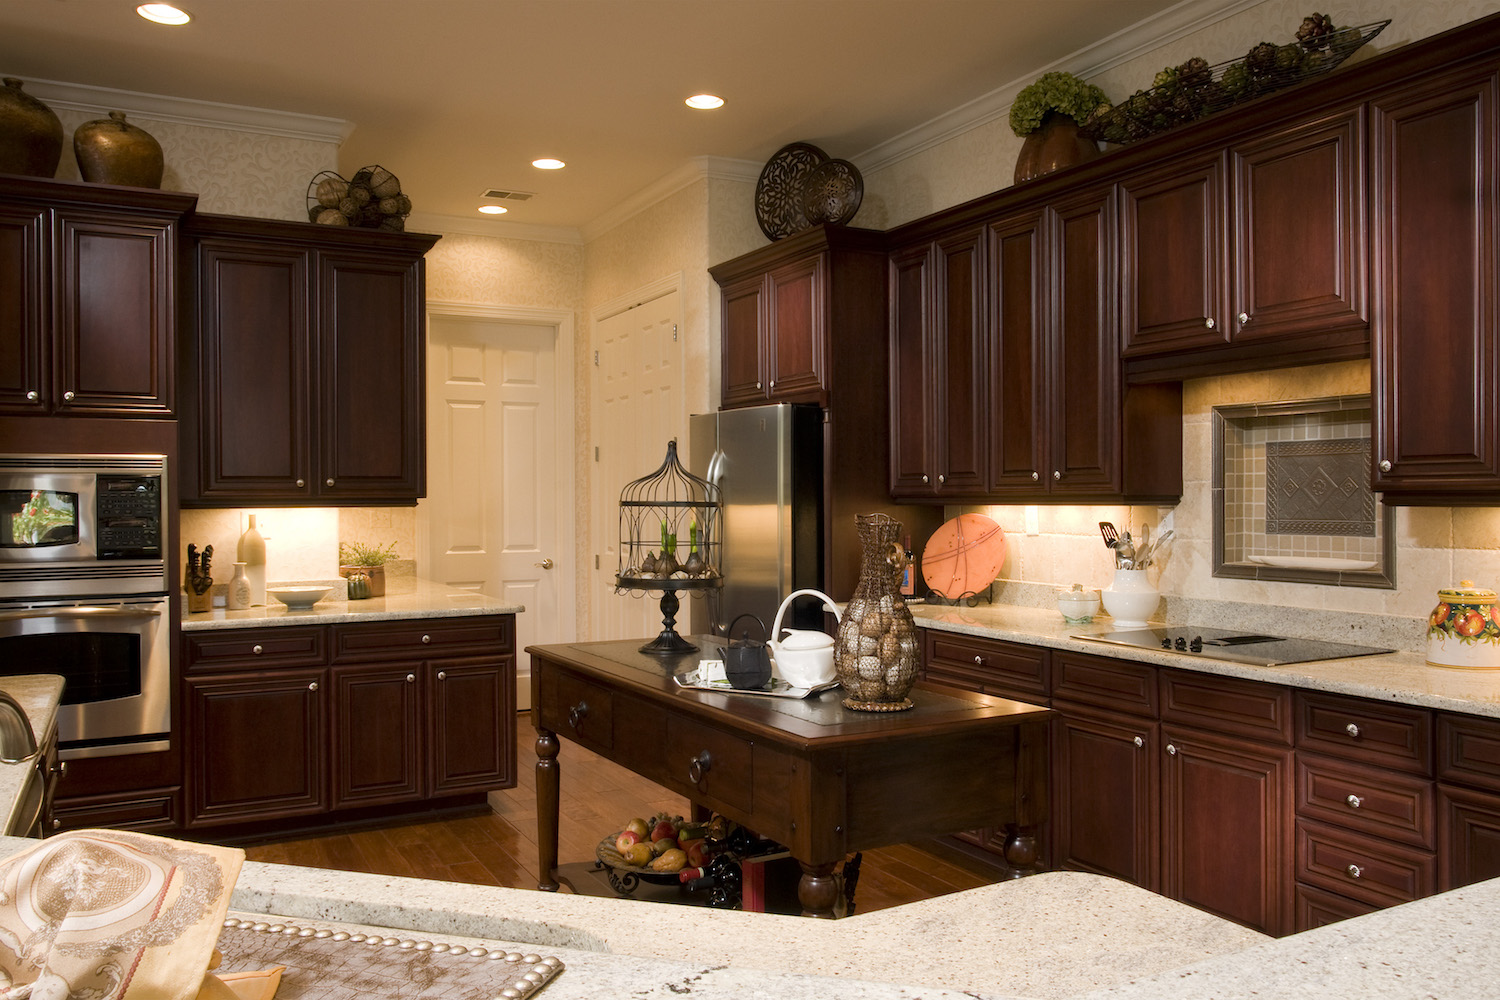 12Ashford-Kitchen.jpg